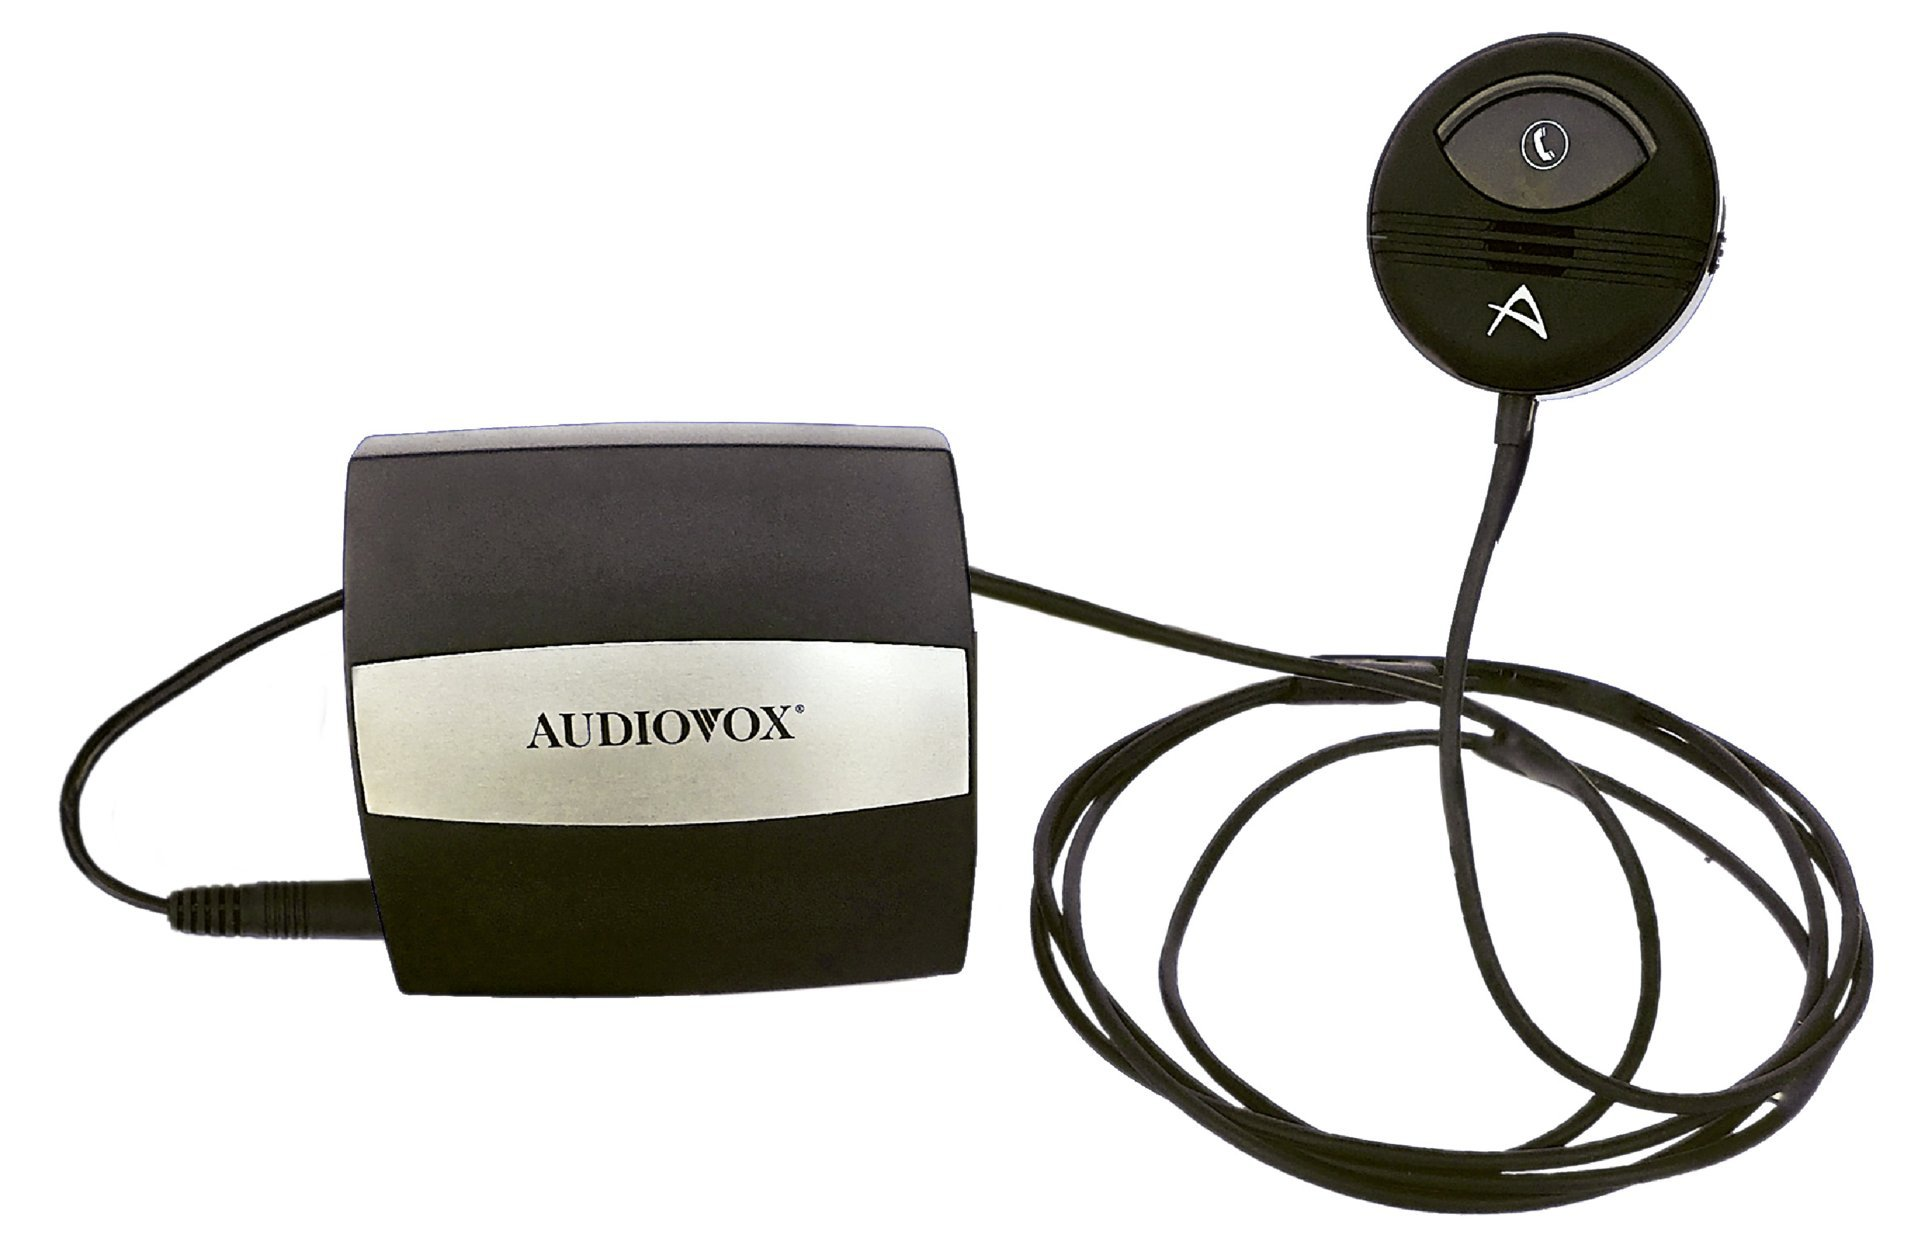 Audiovox BT101NIS Nissan CarStream with Bluetooth 4.0 for Hands-Free Calling, Music Steaming, and Sirius XM